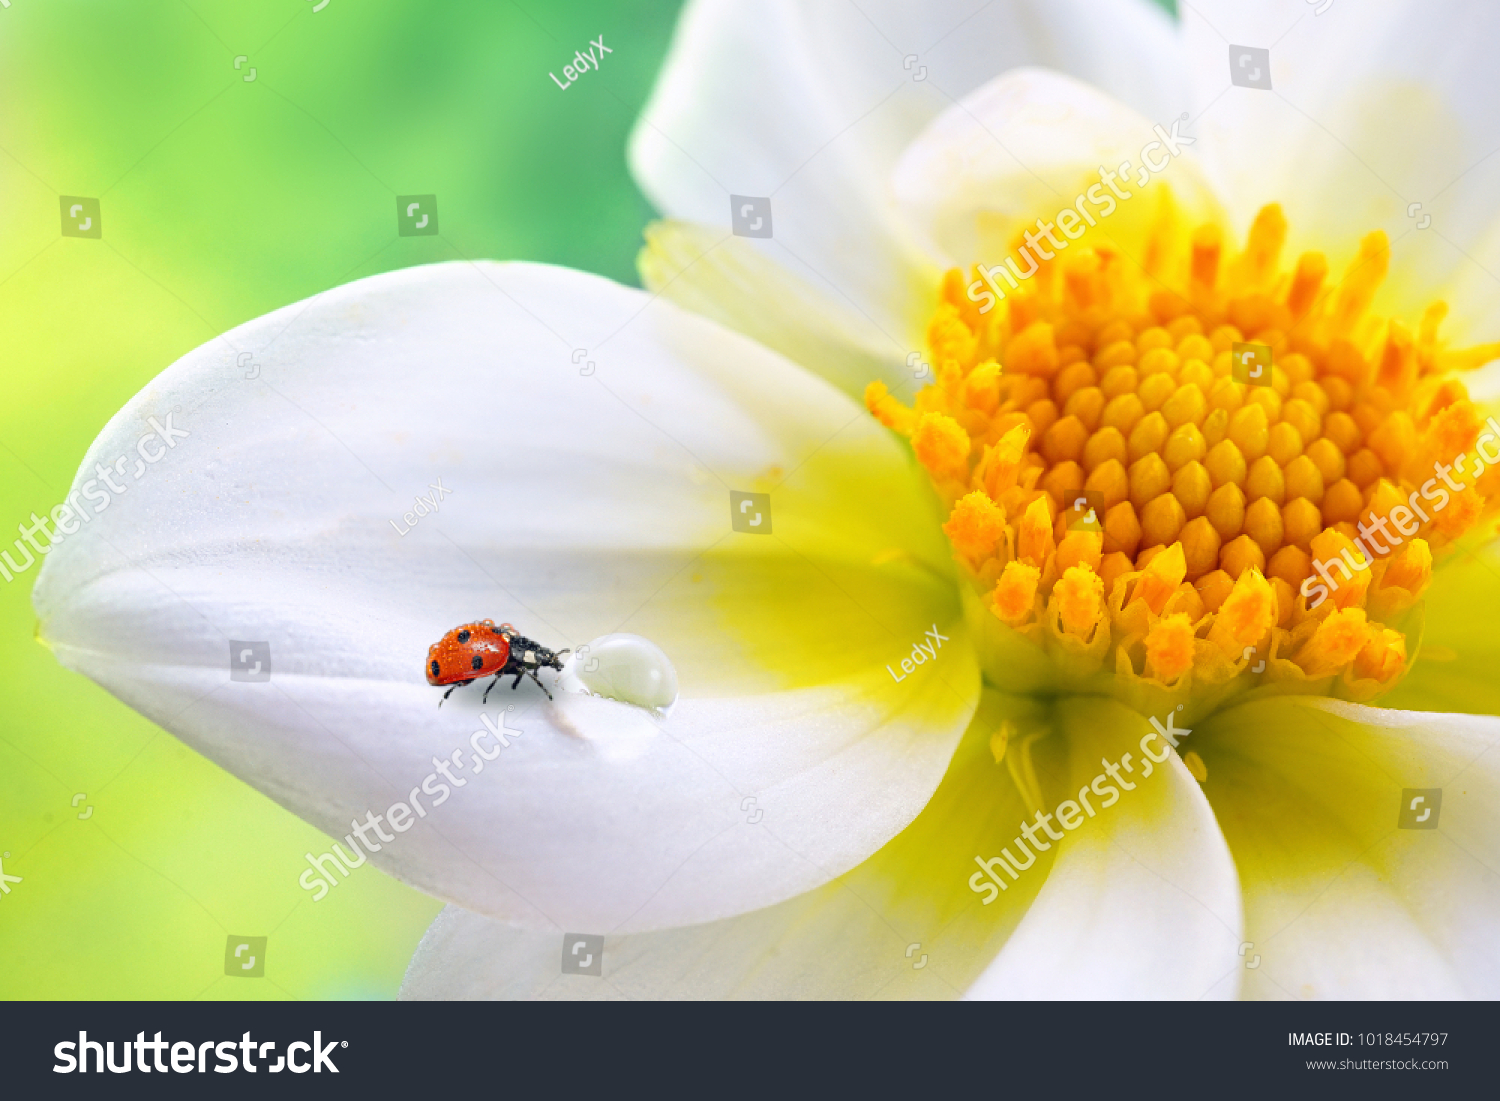 Tropical White Flower Yellow Stamens Ladybug Stock Photo Edit Now